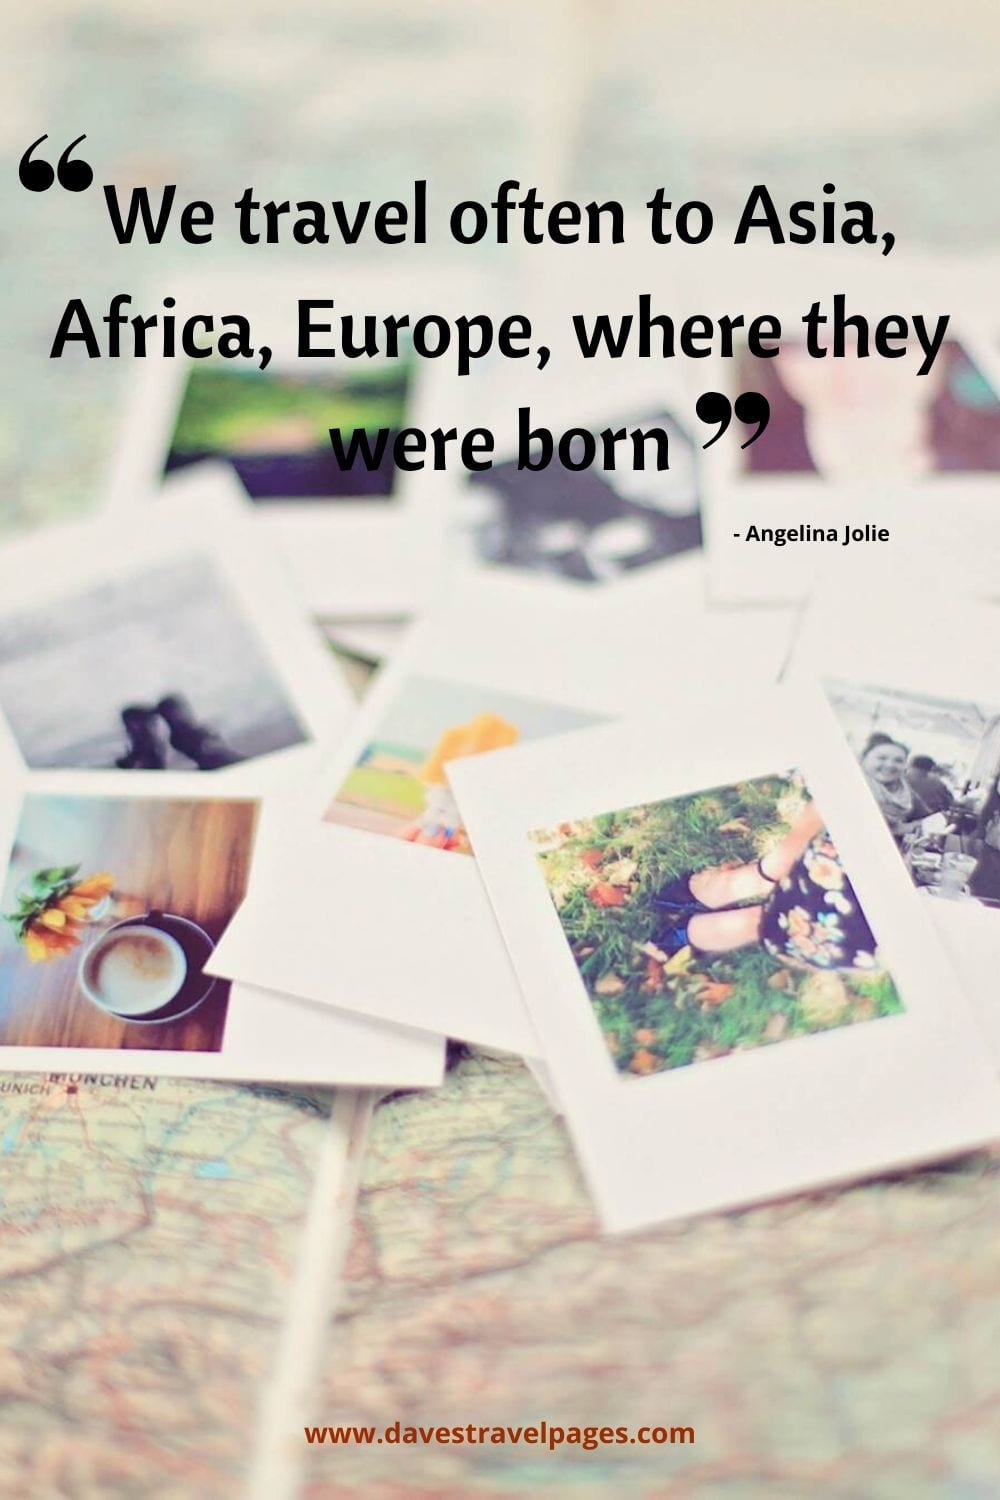 Quotes about traveling by famous people: We travel often to Asia, Africa, Europe, where they were born. Angelina Jolie